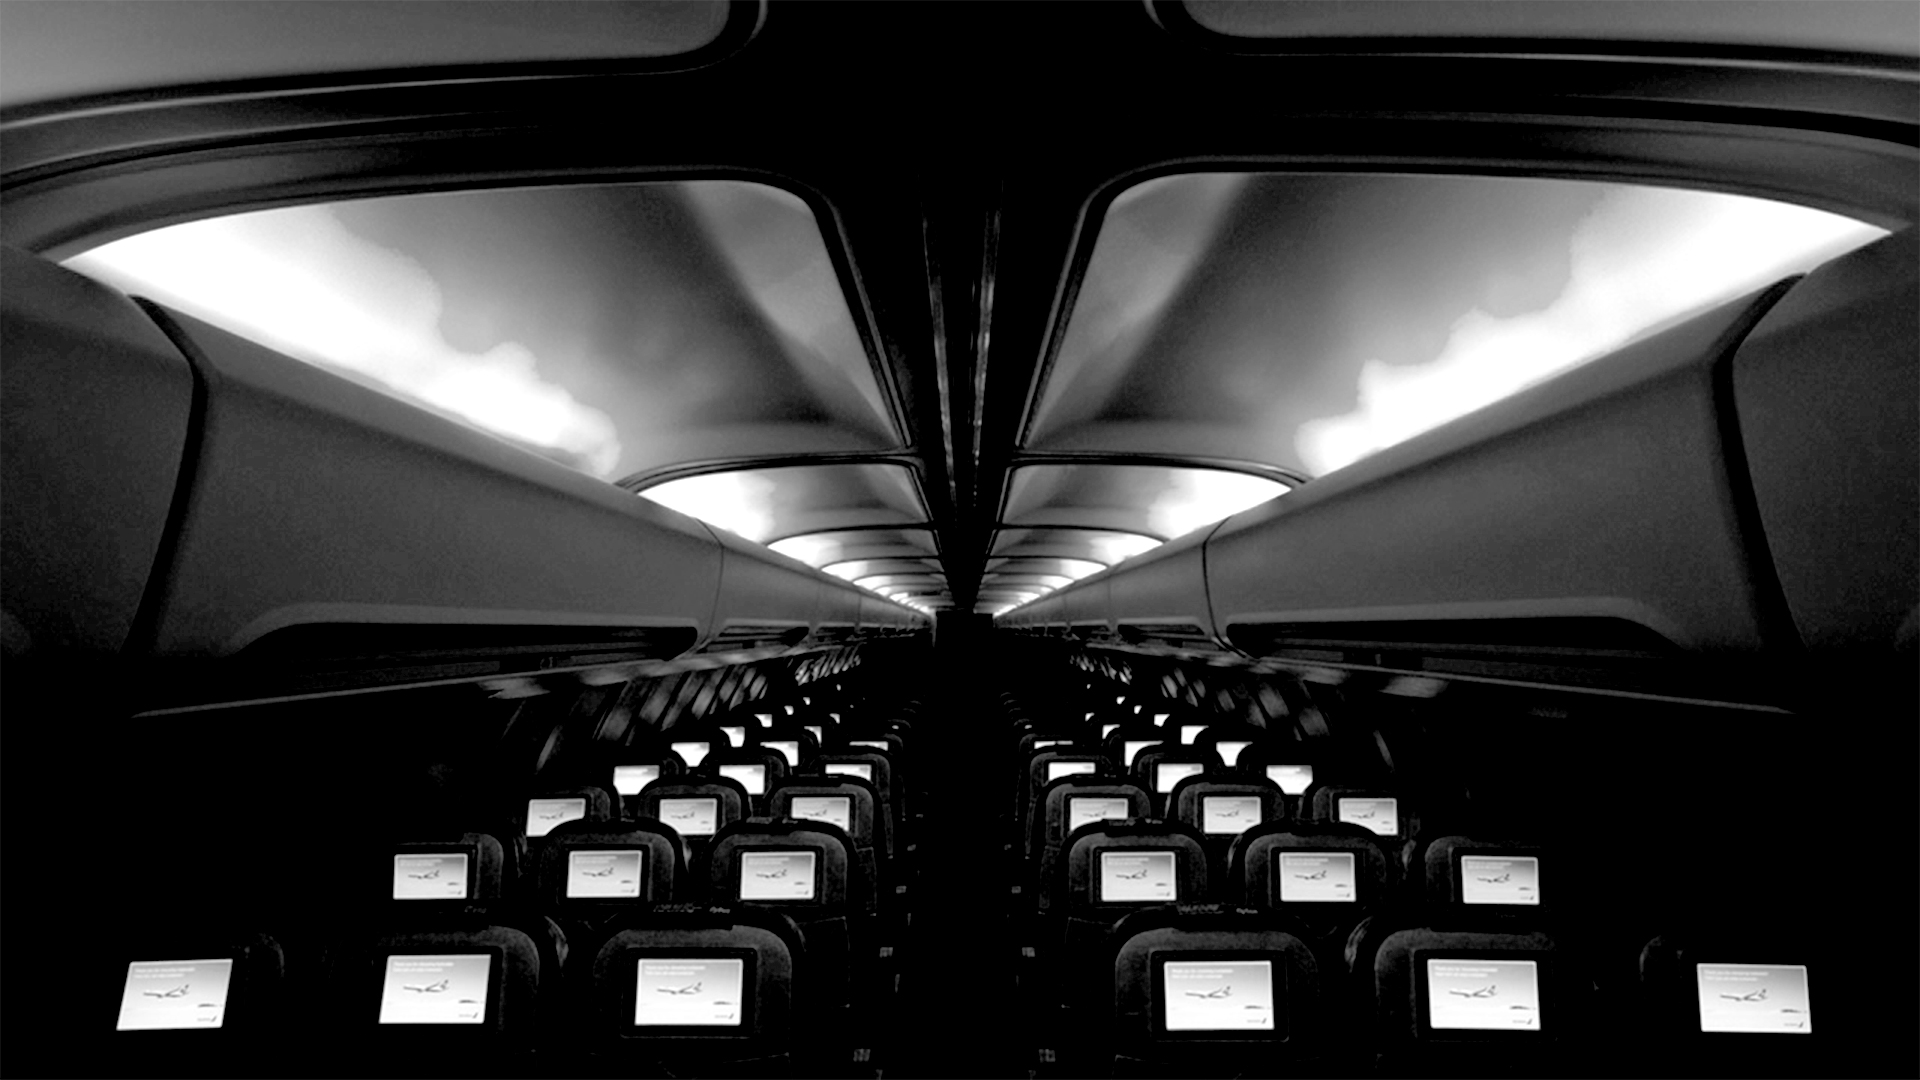 An aircraft cabin lighting scheme